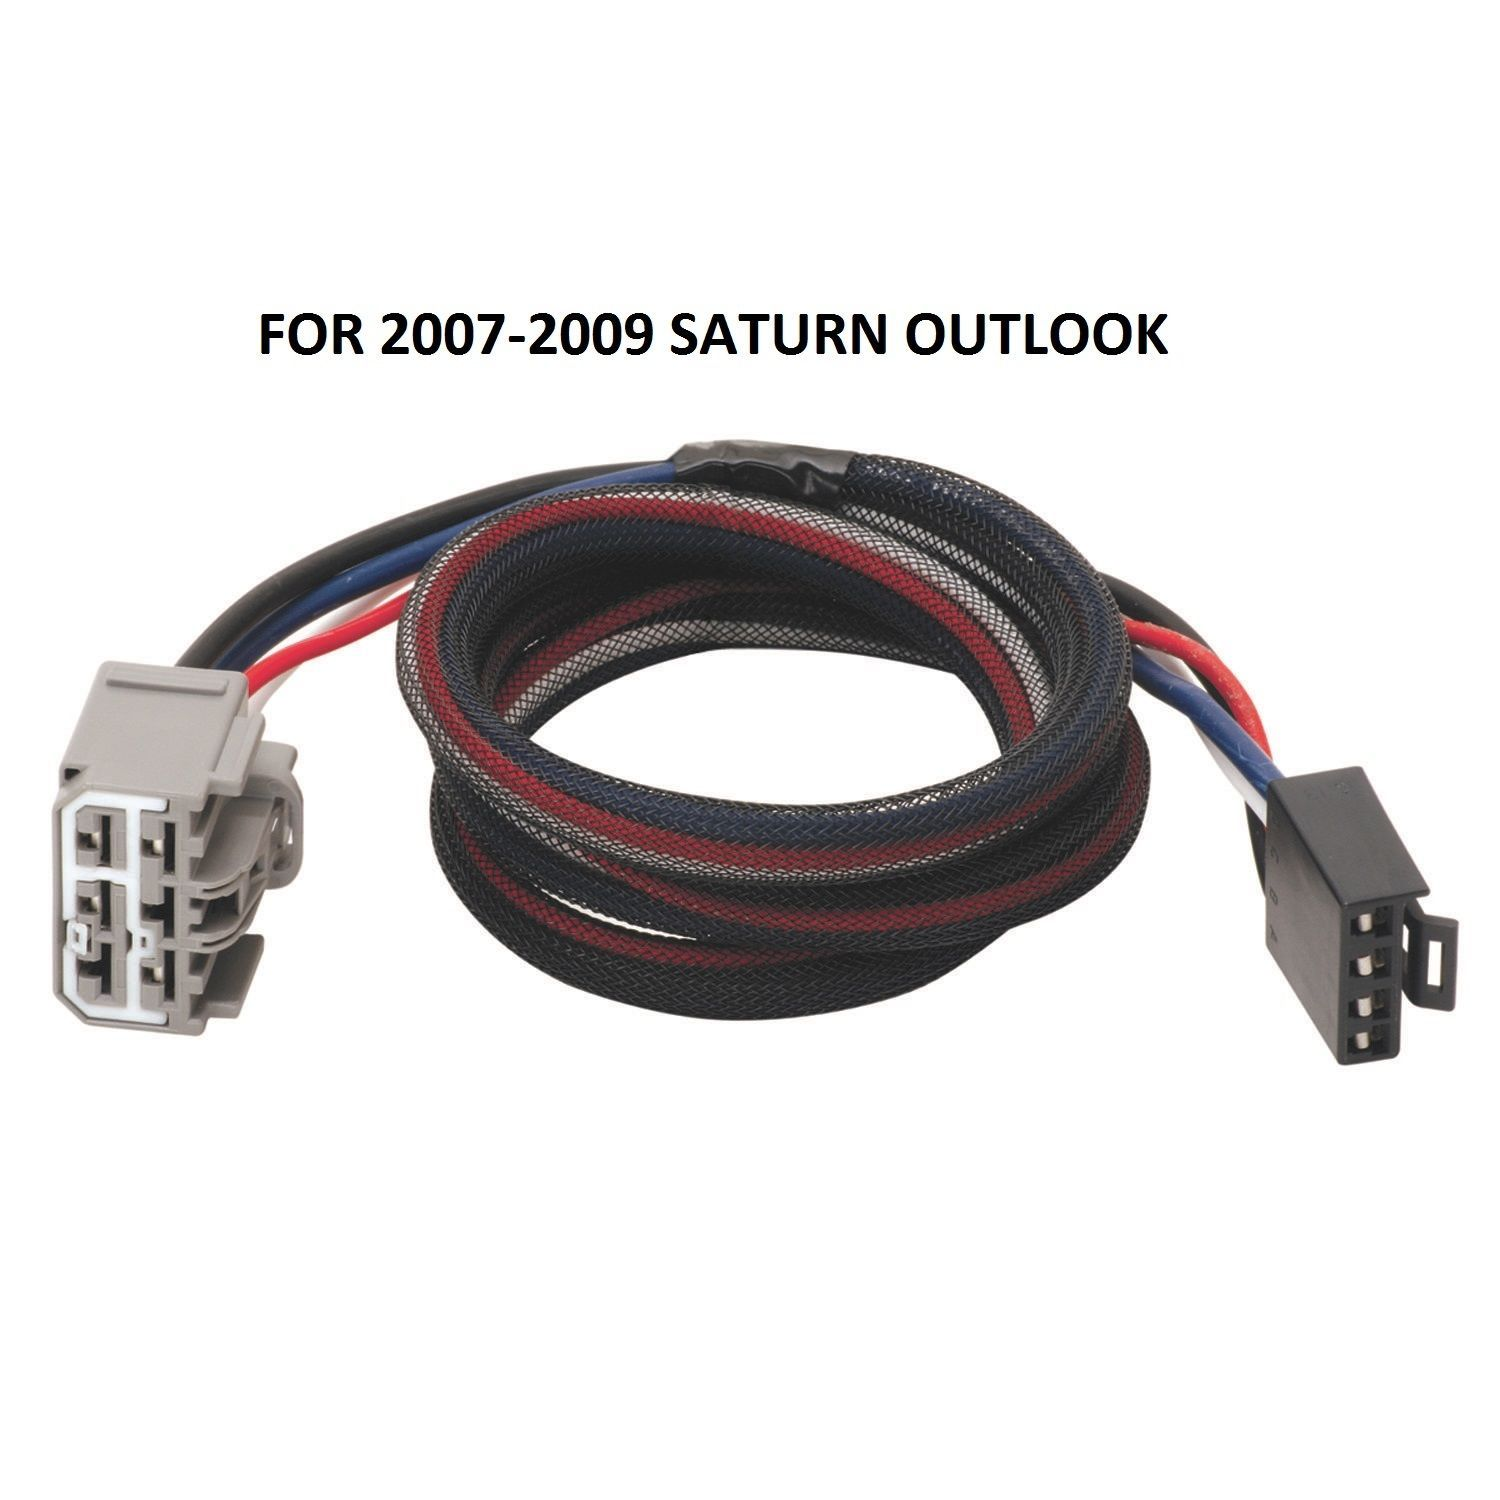 Saturn Outlook Trailer Wiring Diagram